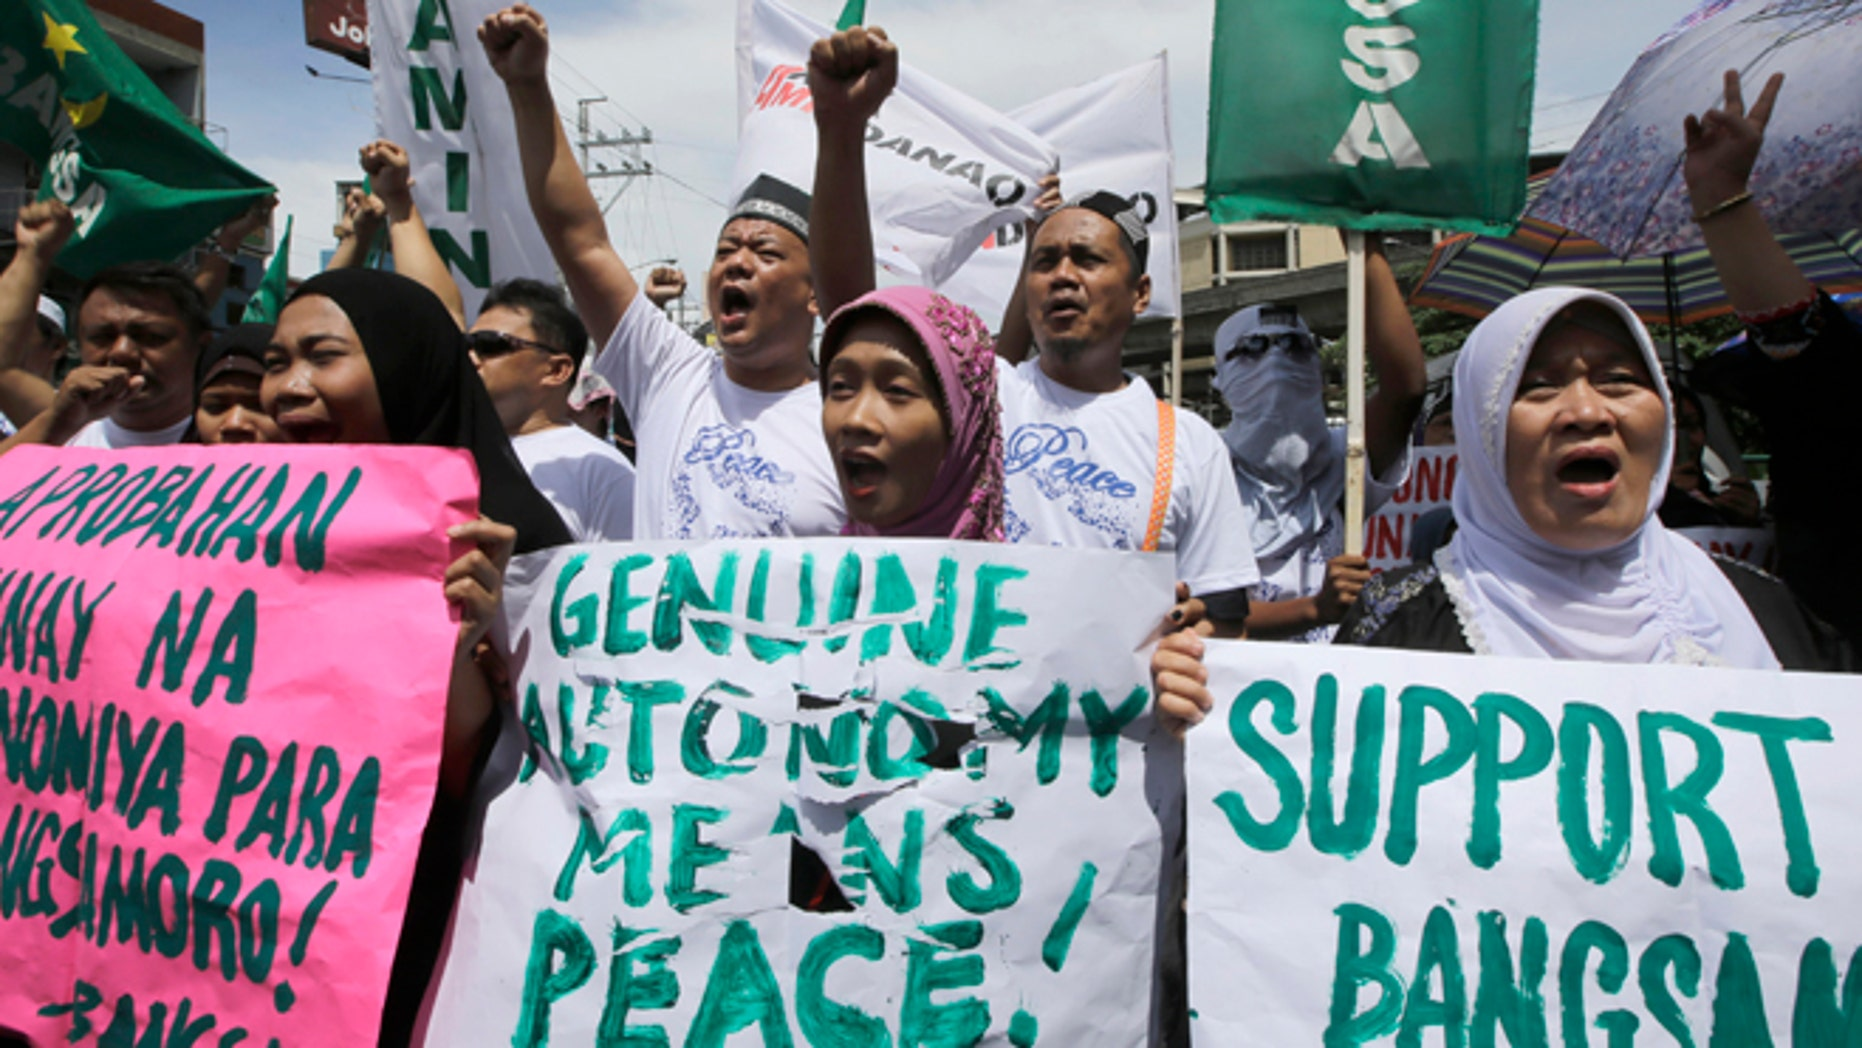 Sept. 10, 2014: Filipino Muslims shout slogans during a rally near the Presidential Palace in support of the Bangsamoro Basic Law draft that was formally submitted by Philippine President Benigno Aquino III to both houses of Congress in Manila, Philippines.